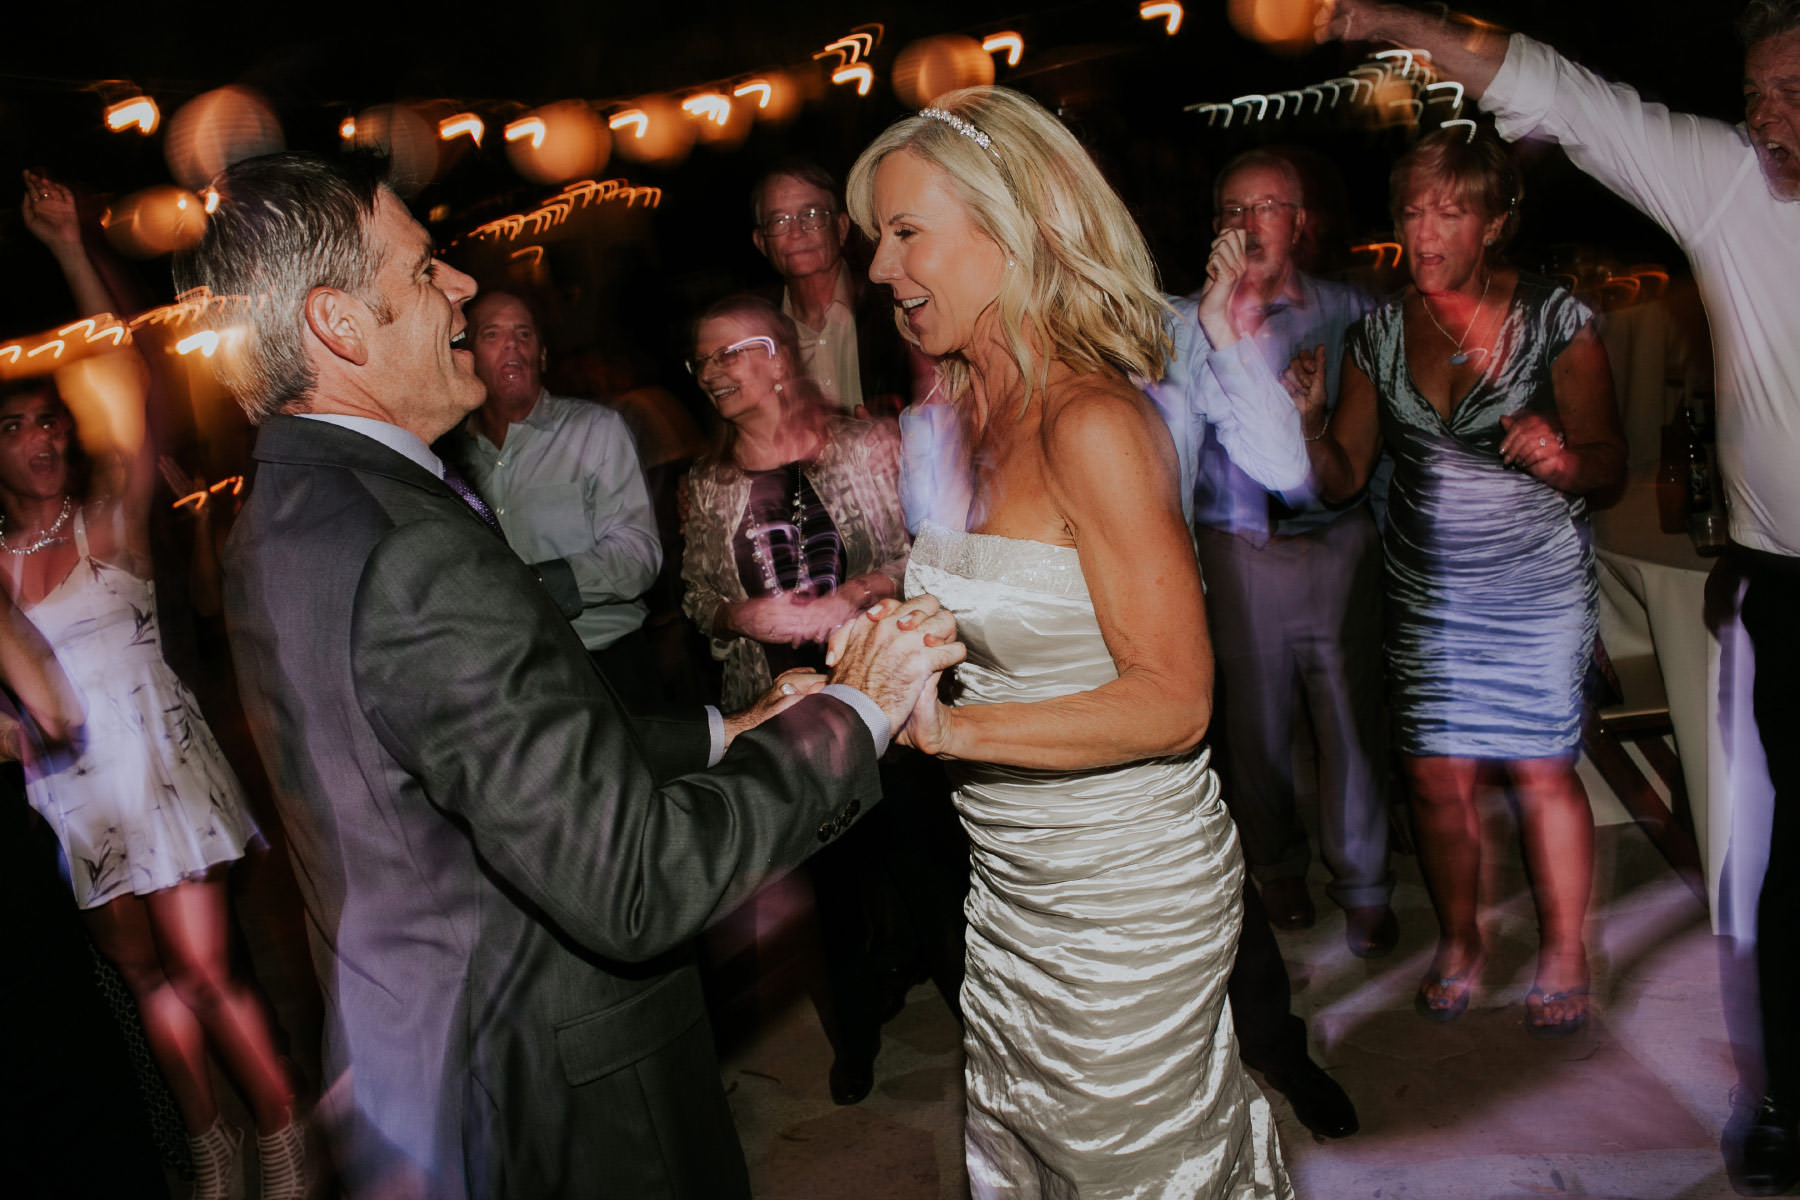 Slow shutter speed bride and groom dancing